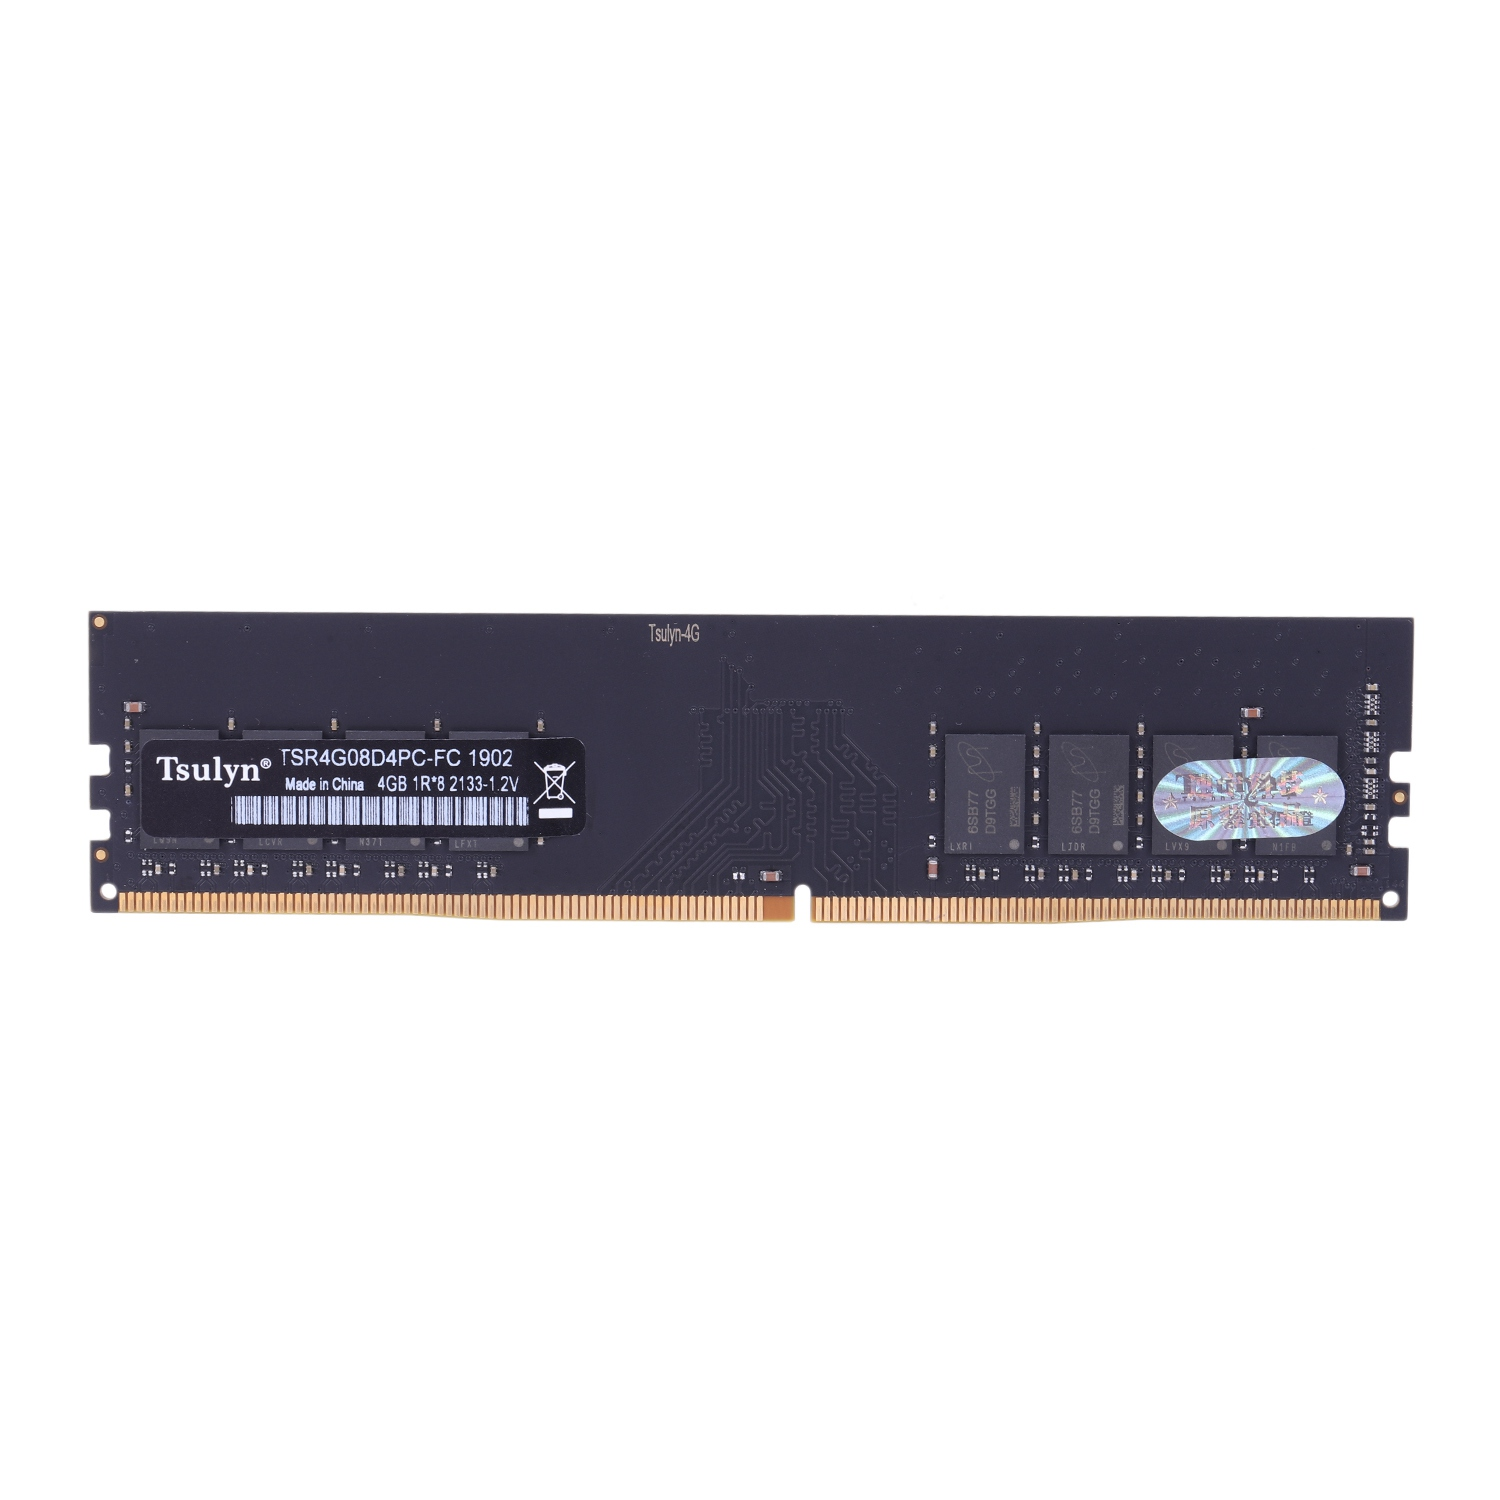 Tsulin 1.2V PC DDR4 RAM Memory DIMM 288-pin Desktop Ram Internal Memory RAM For Desktop Computer Games Ram image